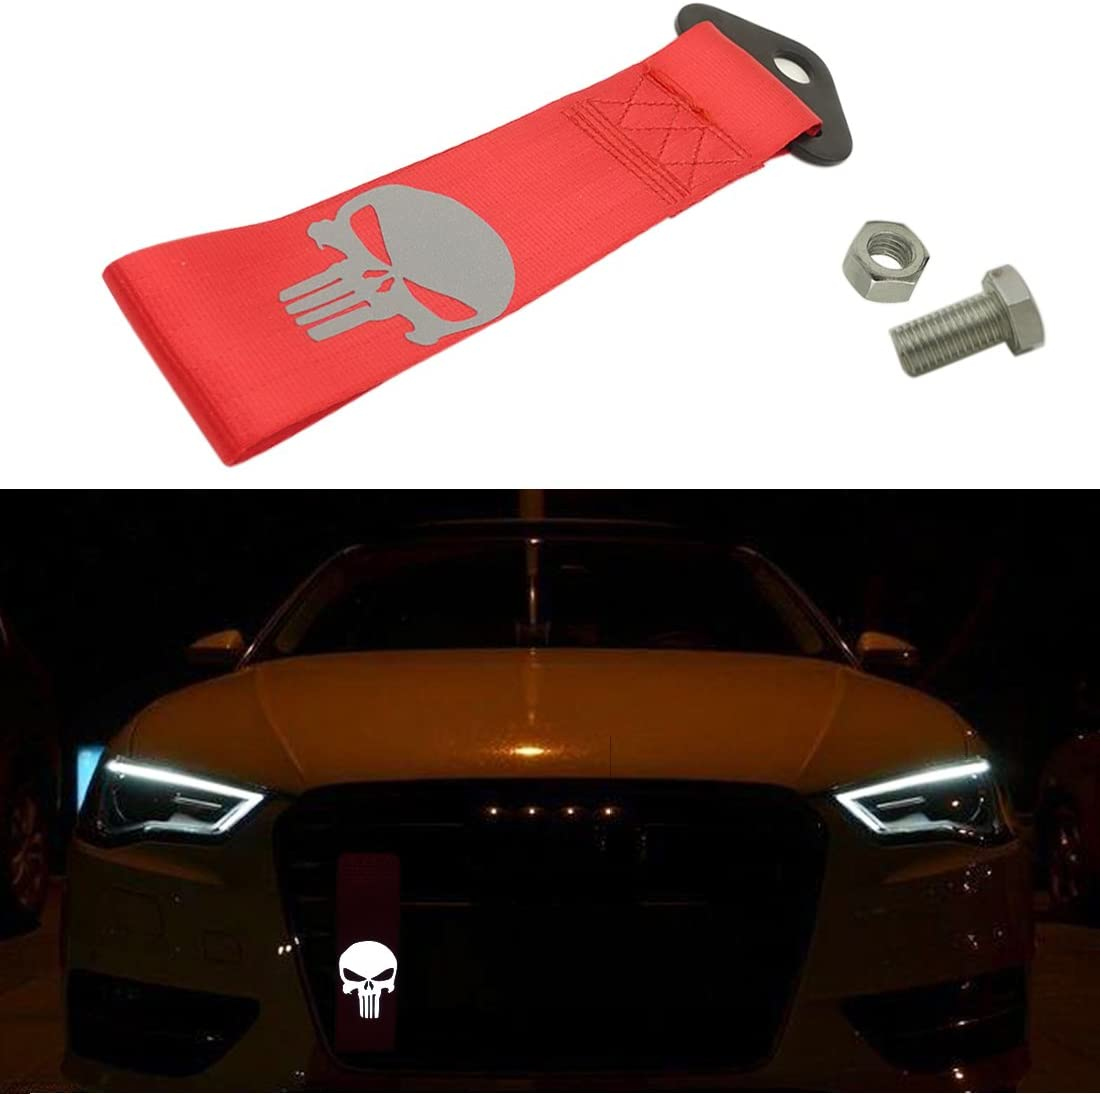 Blue Kaizen Reflective Universal Skull Racing Tow Strap JDM Towing Strap Punisher Bumper Towing Set for Front Or Rear Bumper Towing Hook